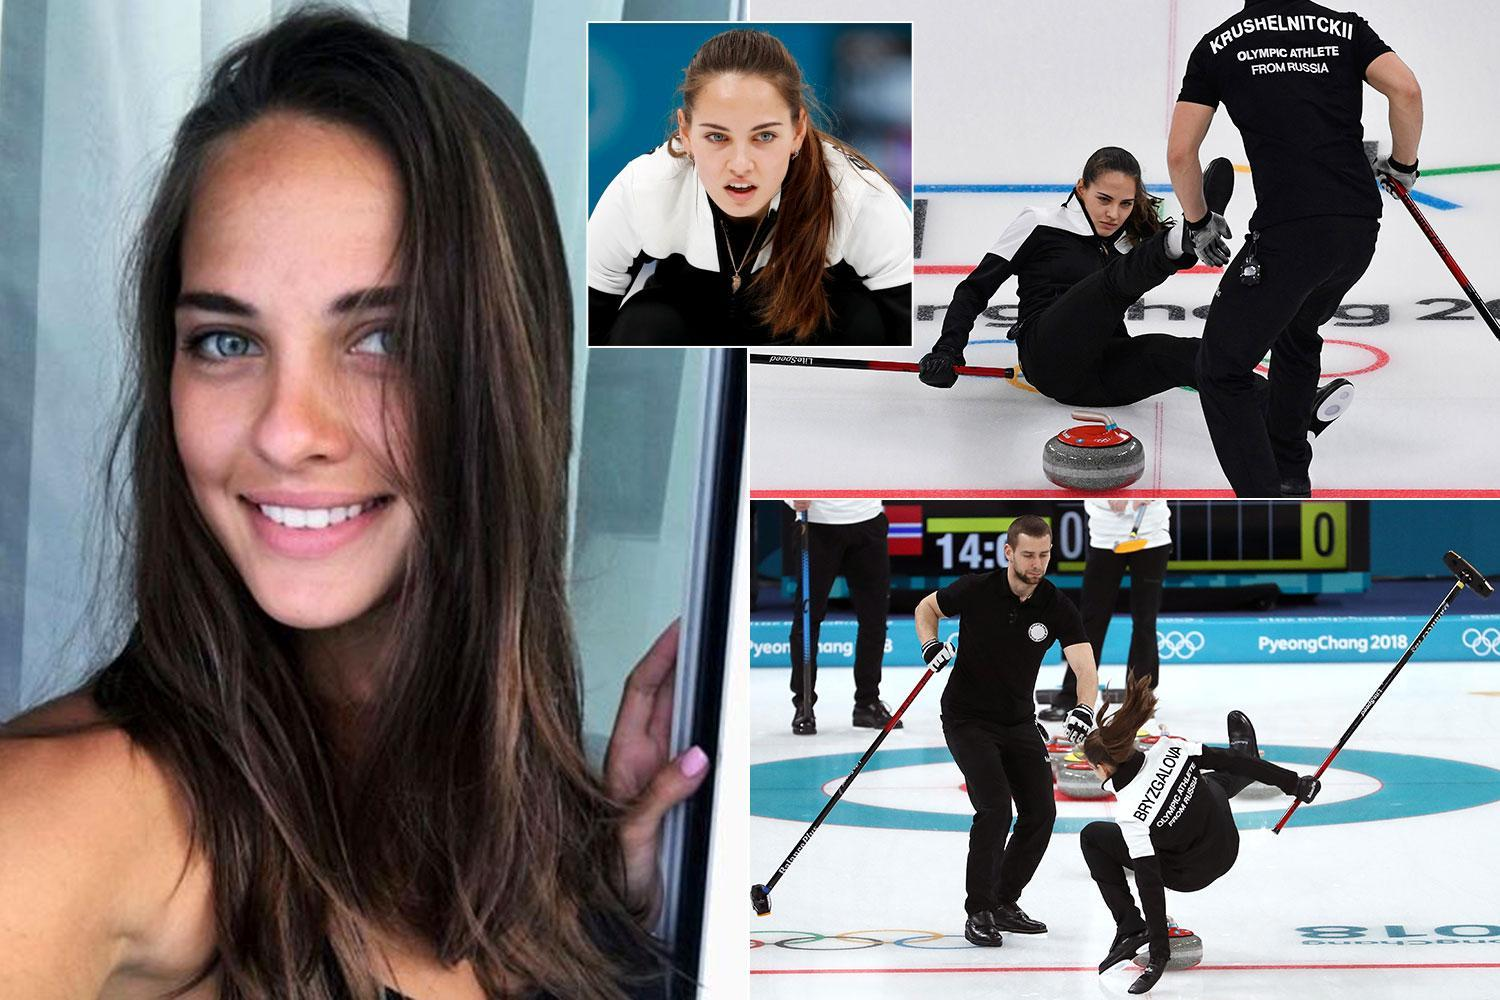 Winter Olympics 2018: Stunning Russian curler Anastasia Bryzgalova tumbles on the ice after taking internet by storm